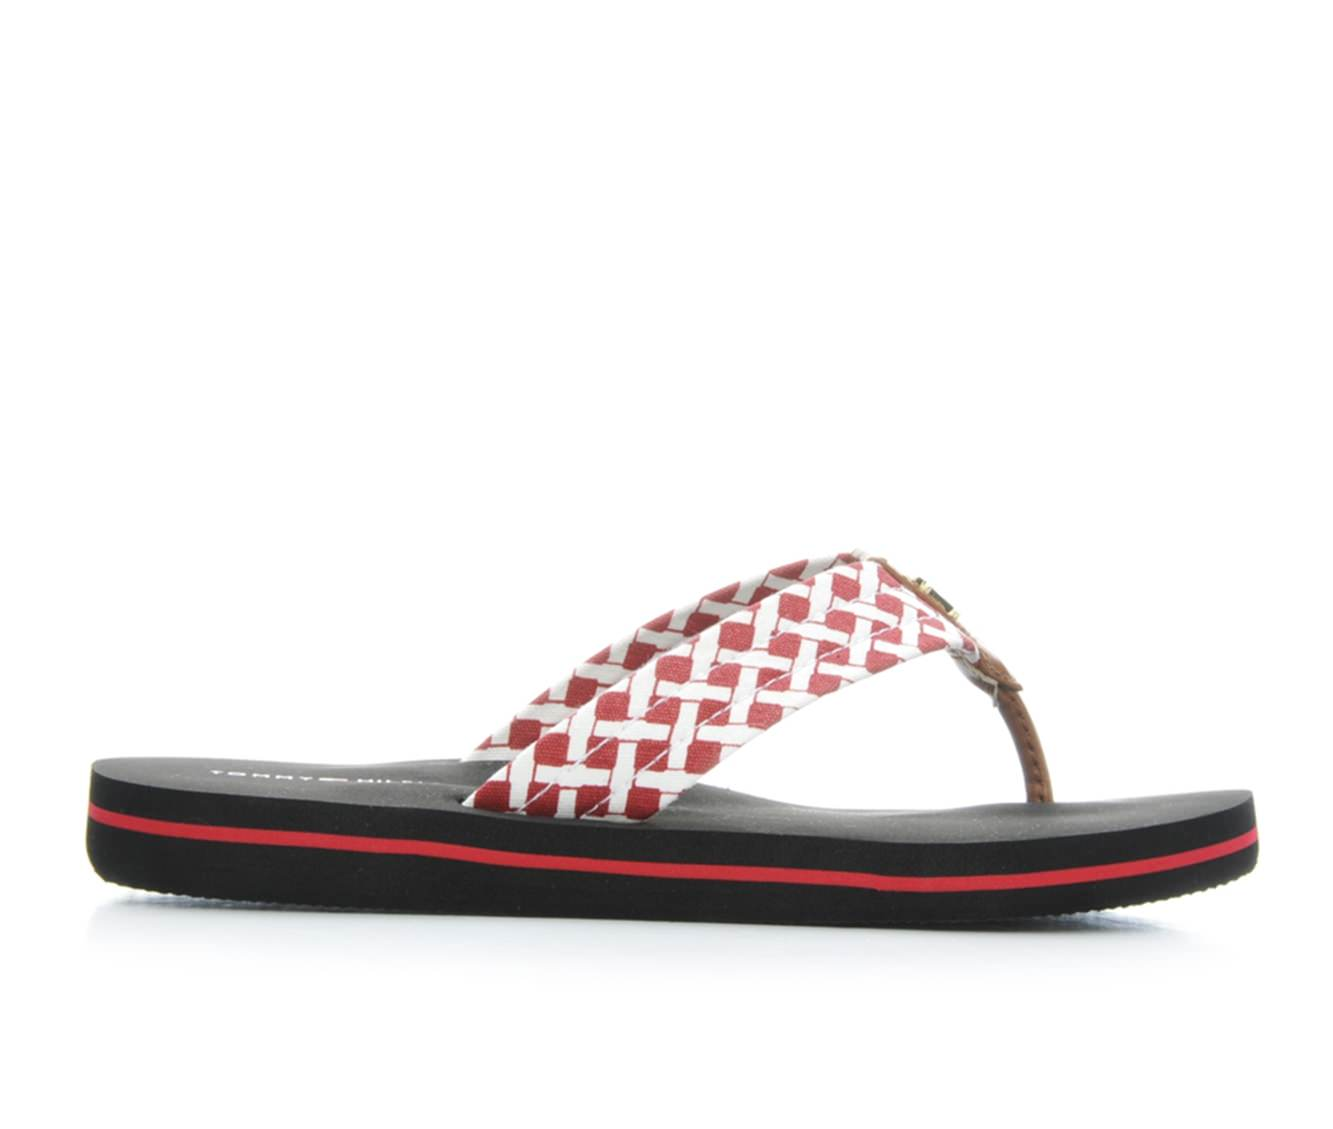 Women's Tommy Hilfiger Coven Sandals (Red)